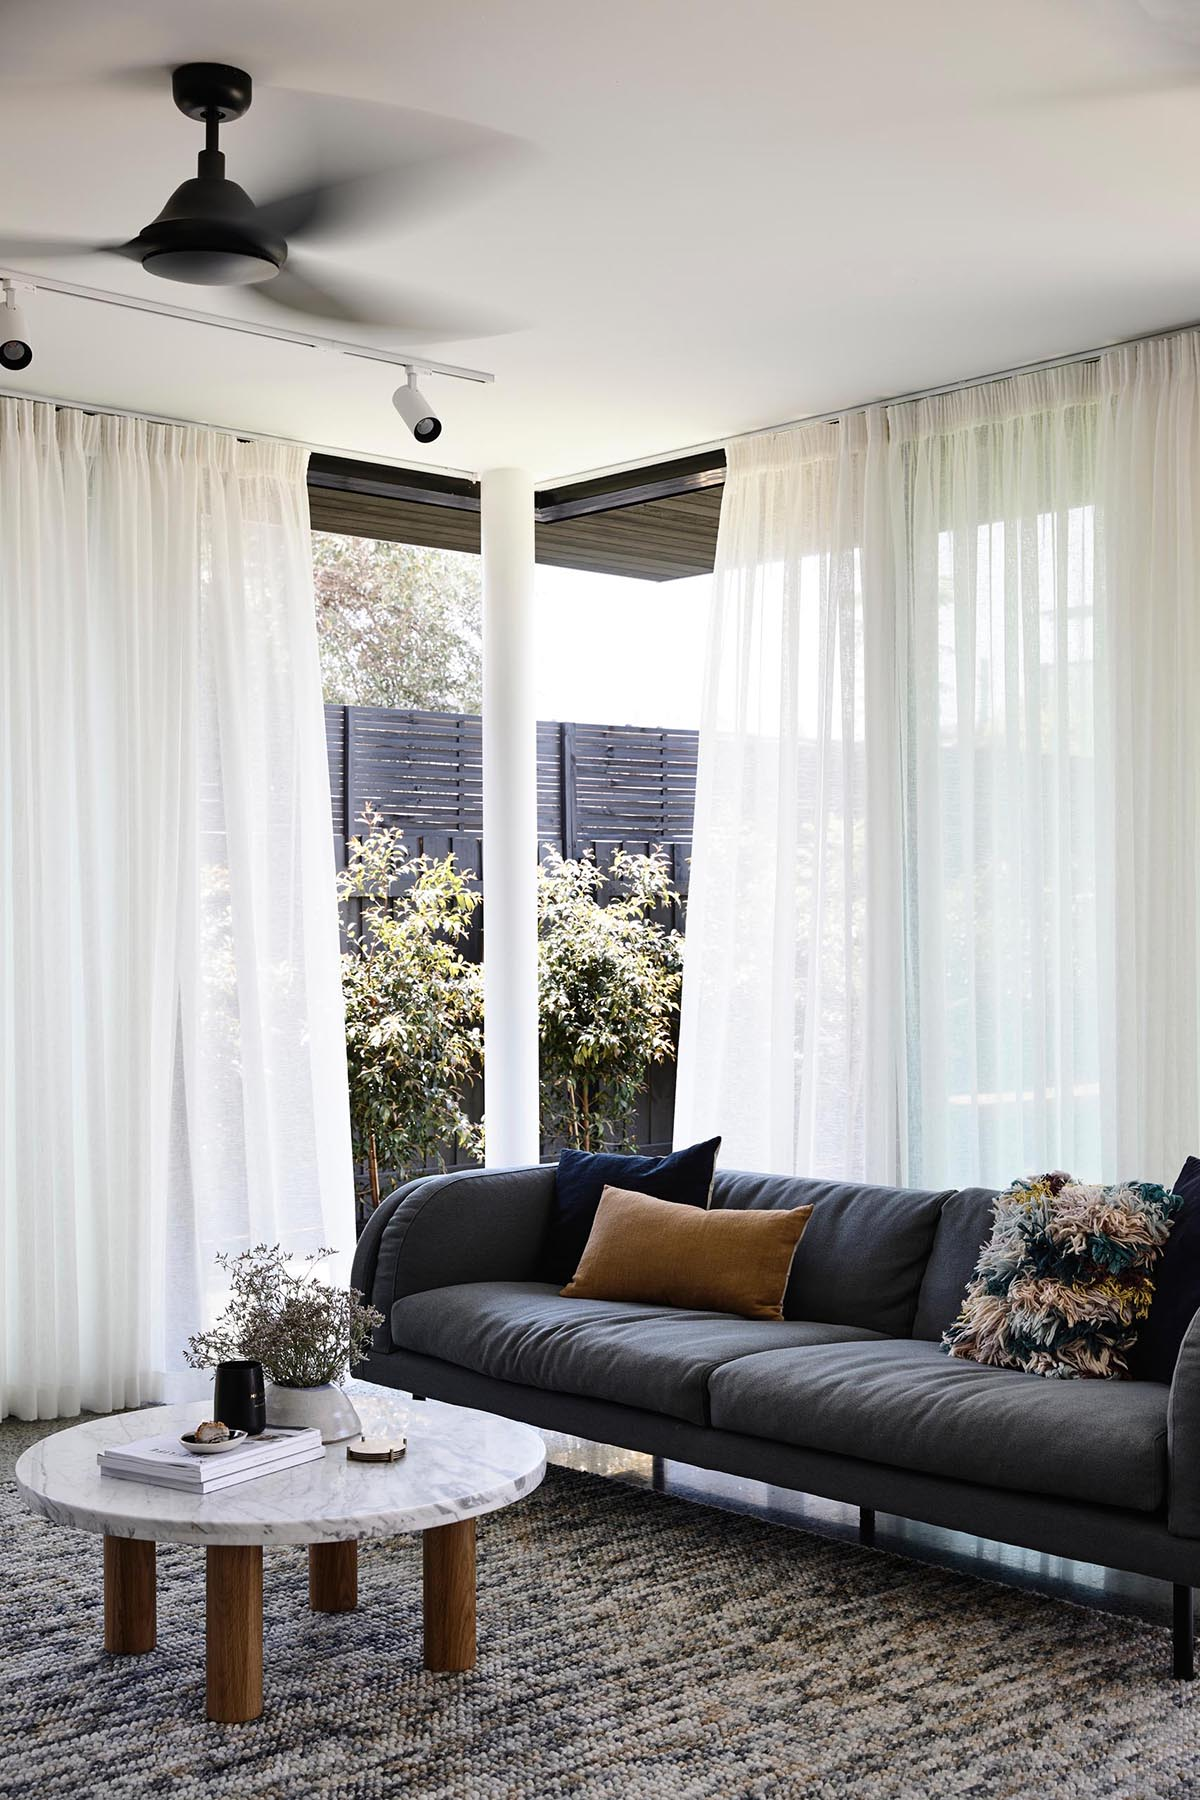 The glass walls of this modern home can be opened to connect the interior spaces, like the living room, to the backyard. Floor to ceiling curtains allow the breeze to flow through, yet provide privacy at the same time.